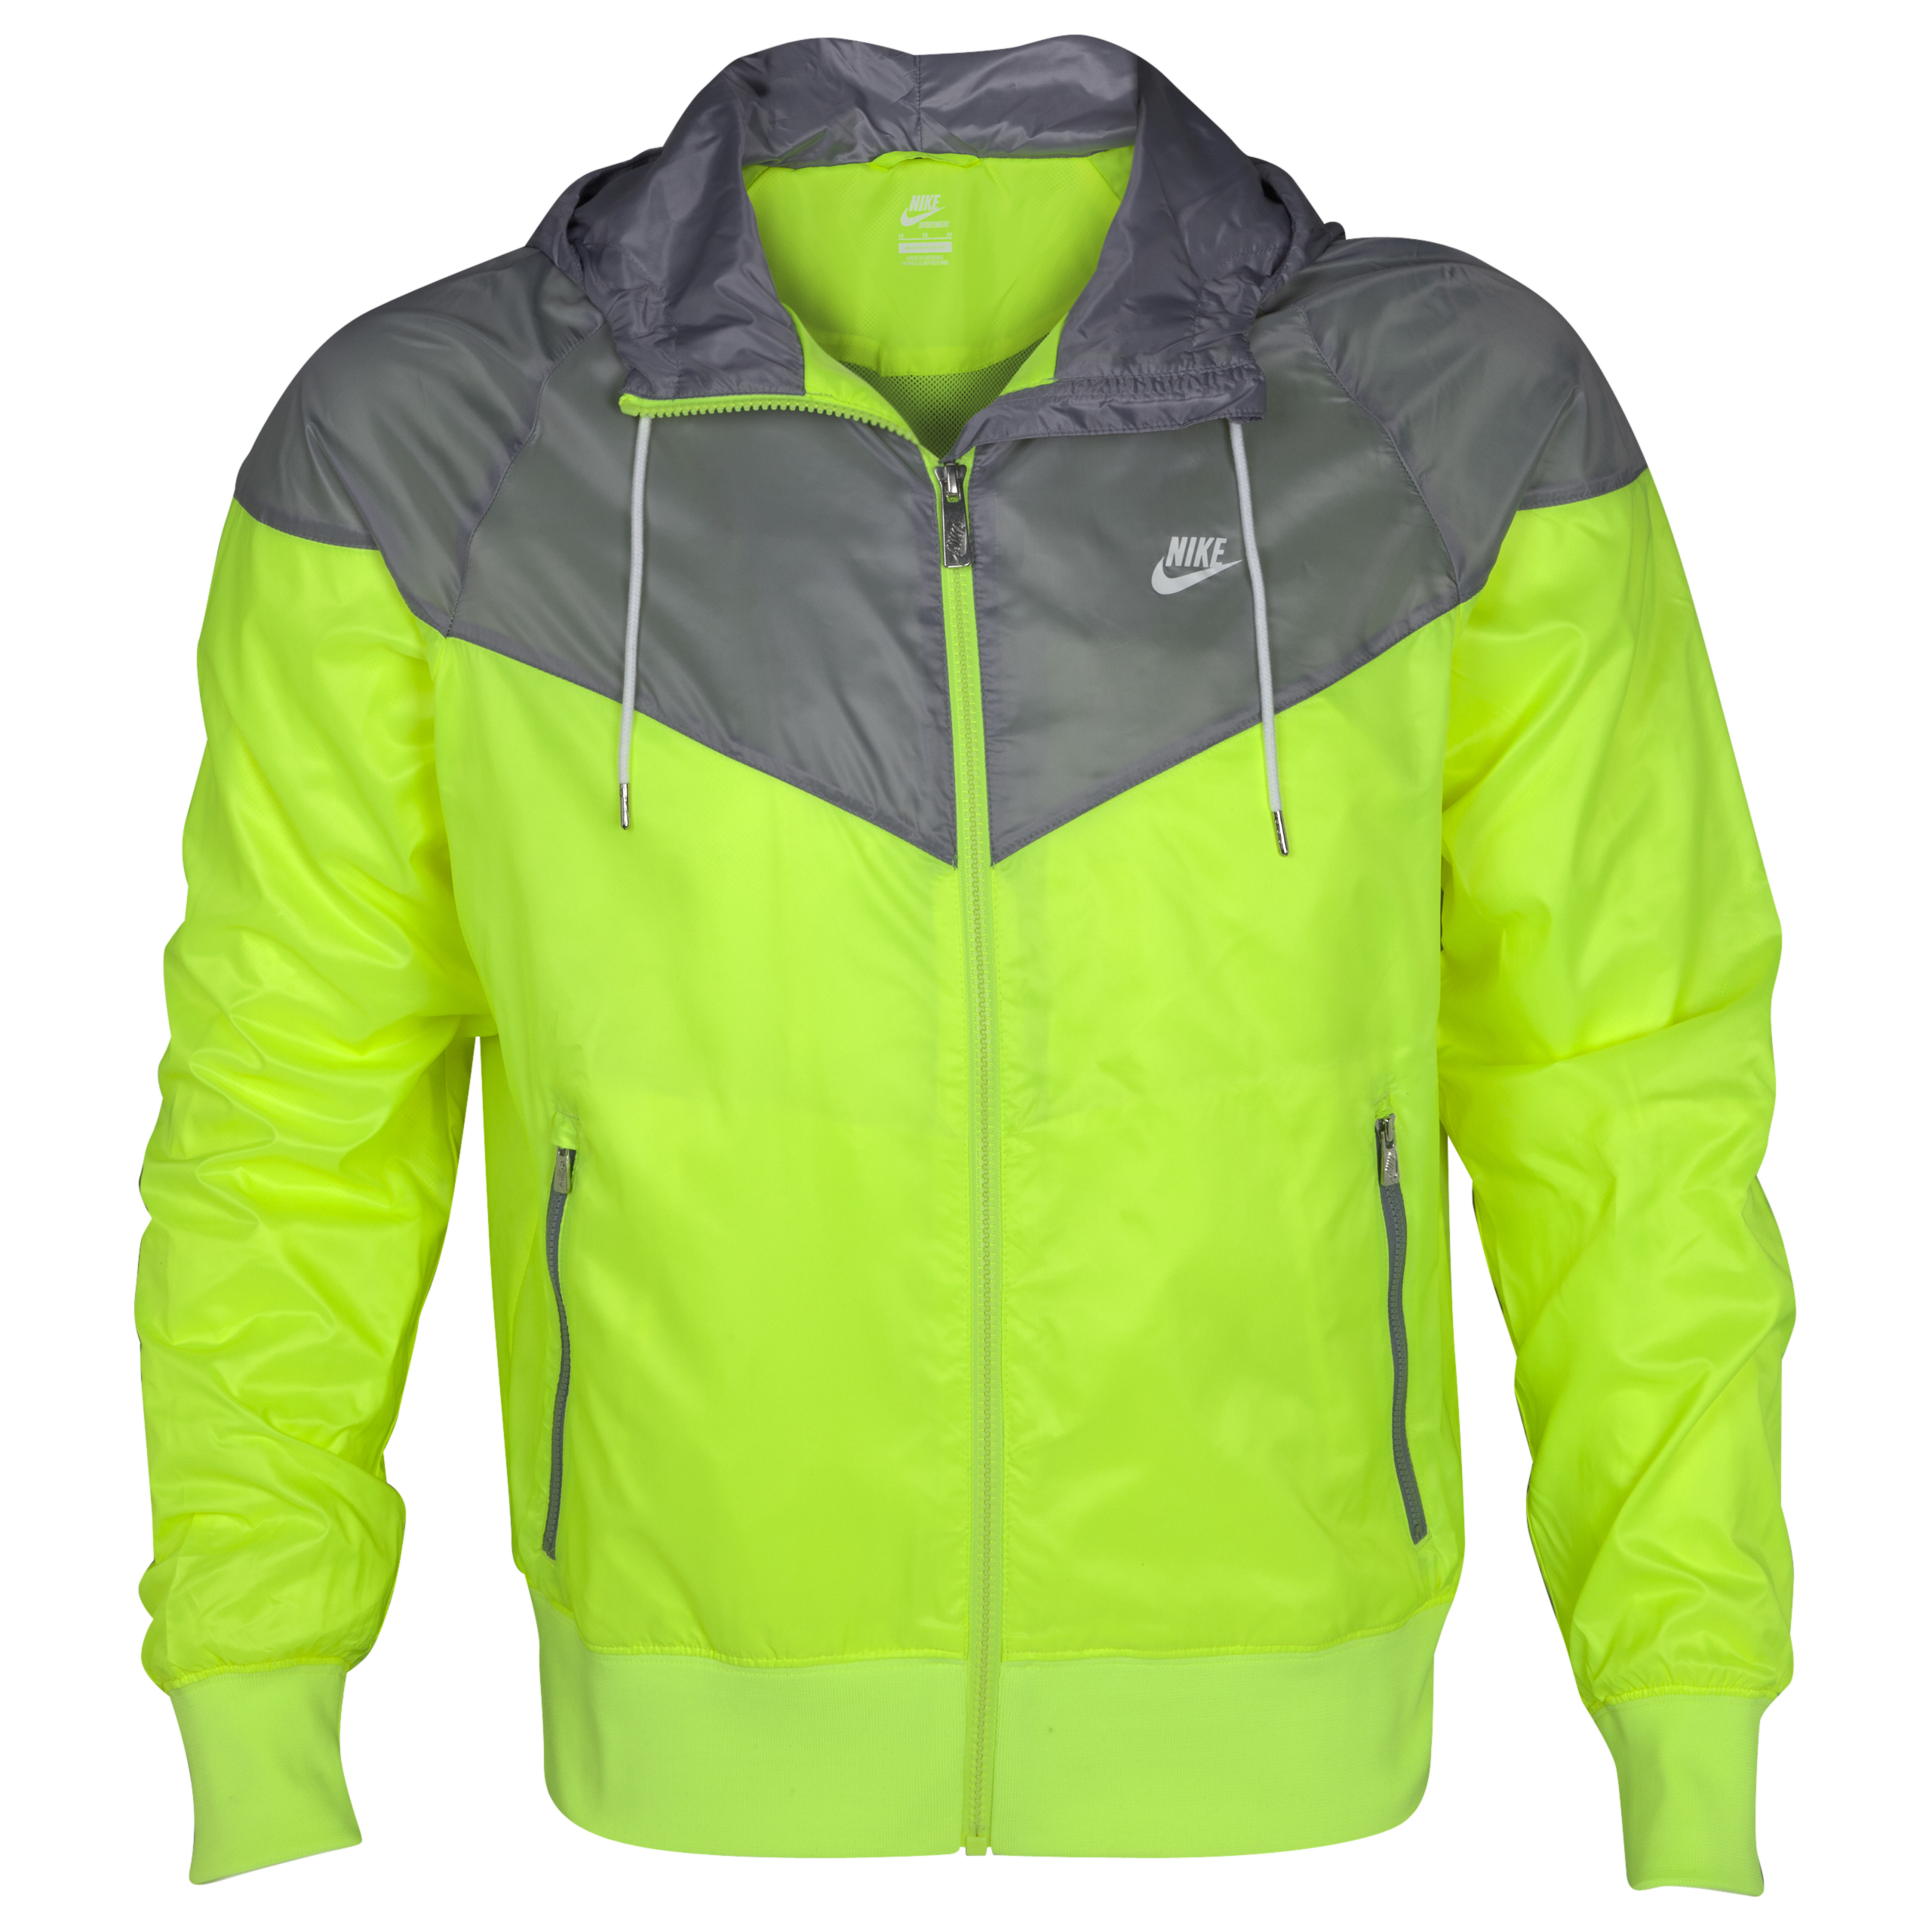 Nike Windrunner Jacket - Dark Golf Leaf/Granite